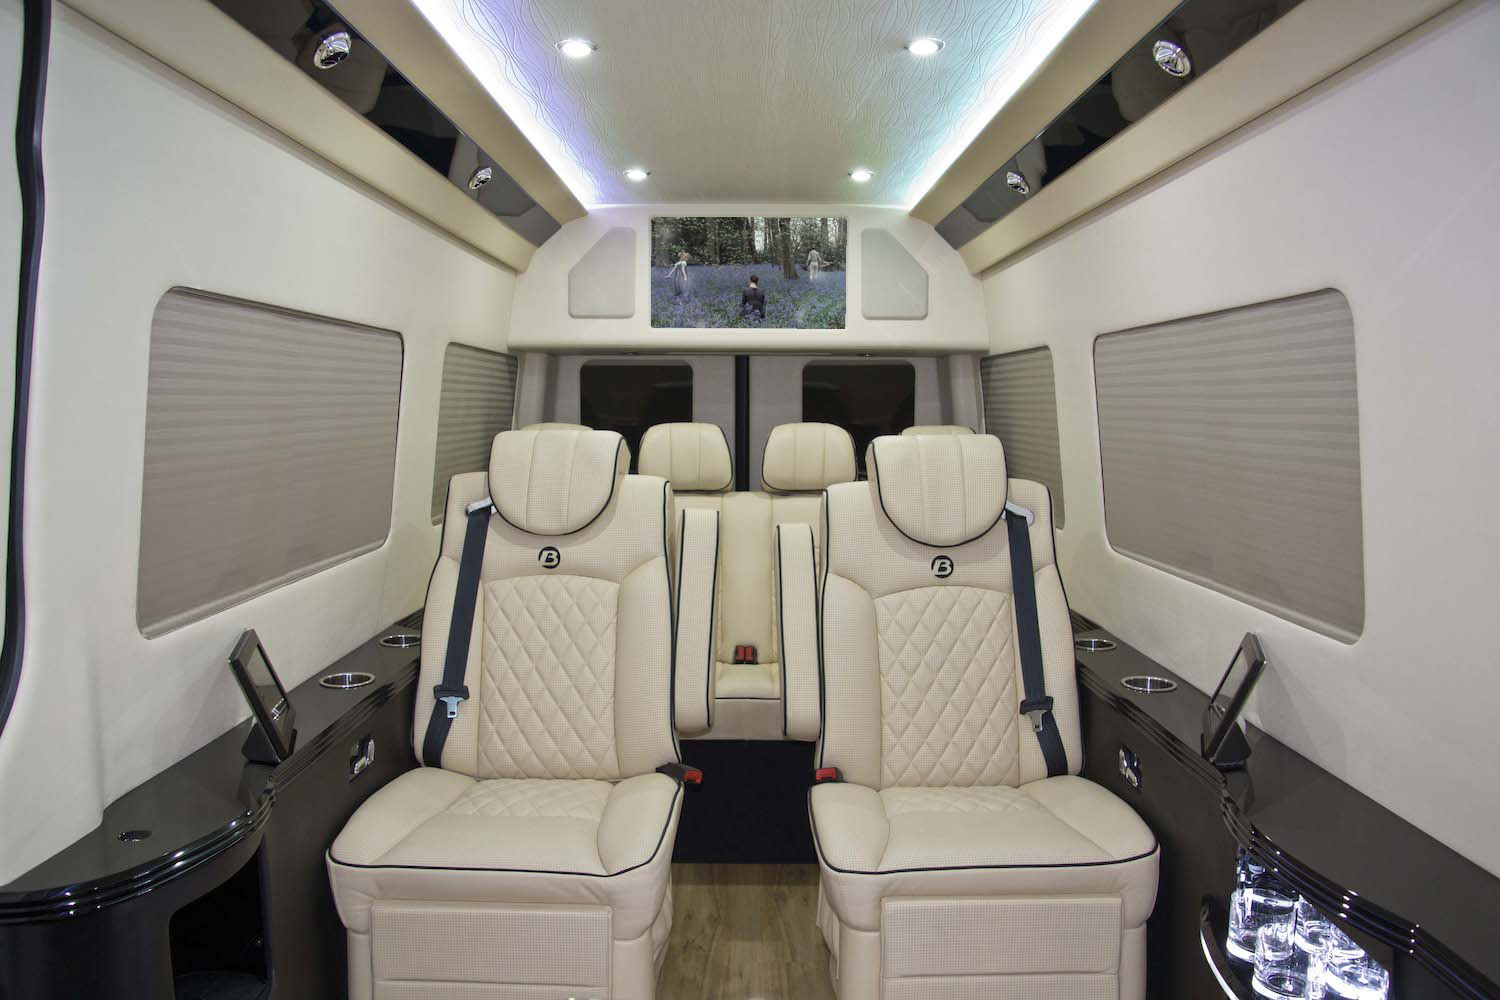 Are you looking for sprinter van conversions in us bespokecoach